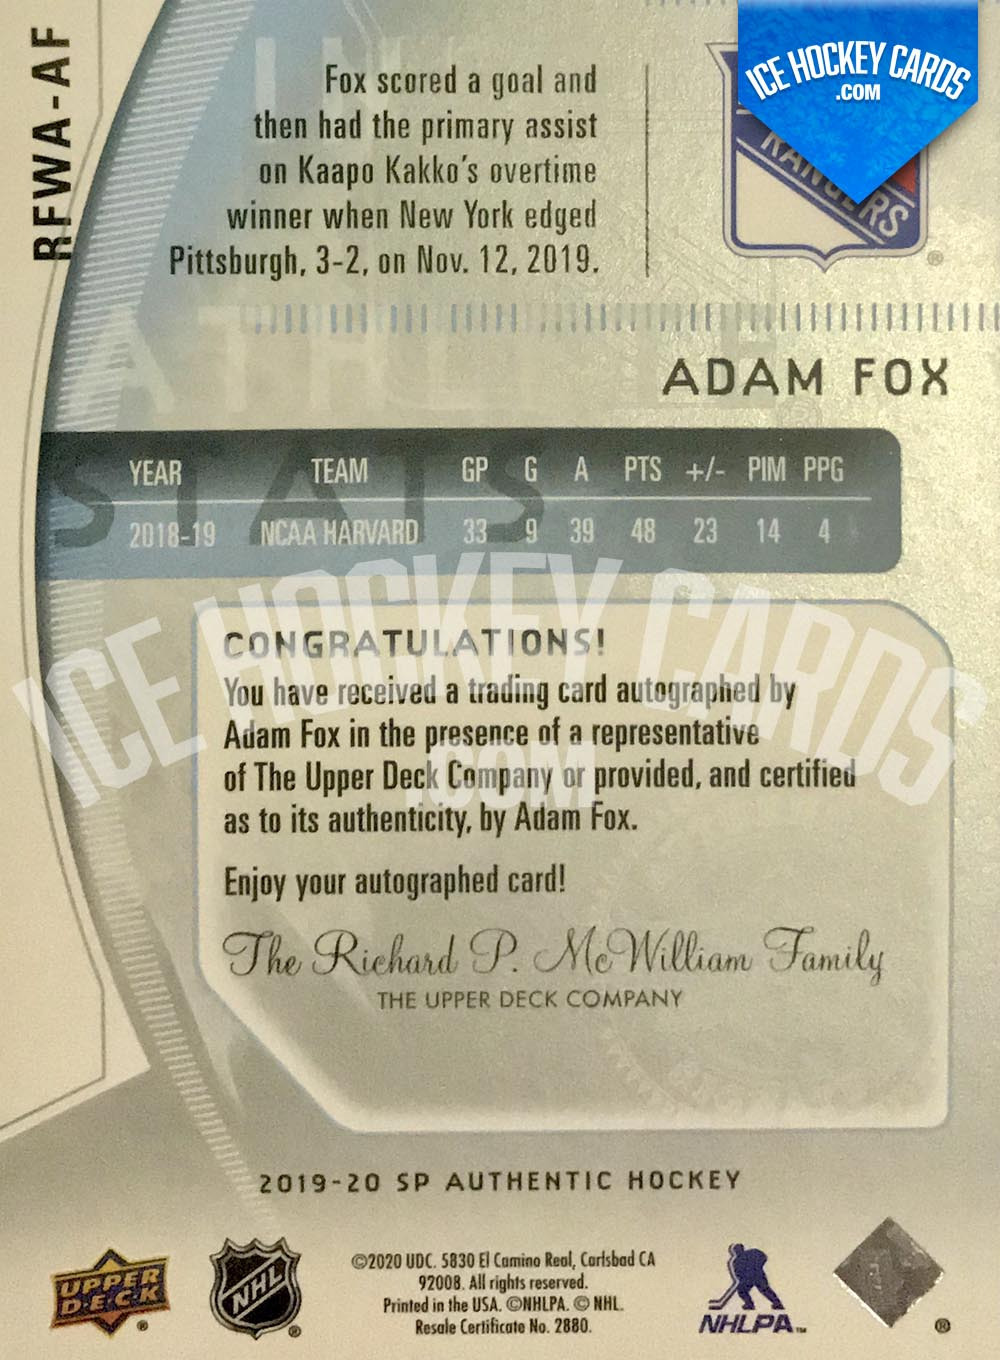 Upper Deck - SP Authentic 2019-20 - Adam Fox Autographed Future Watch Retro Auto RC back